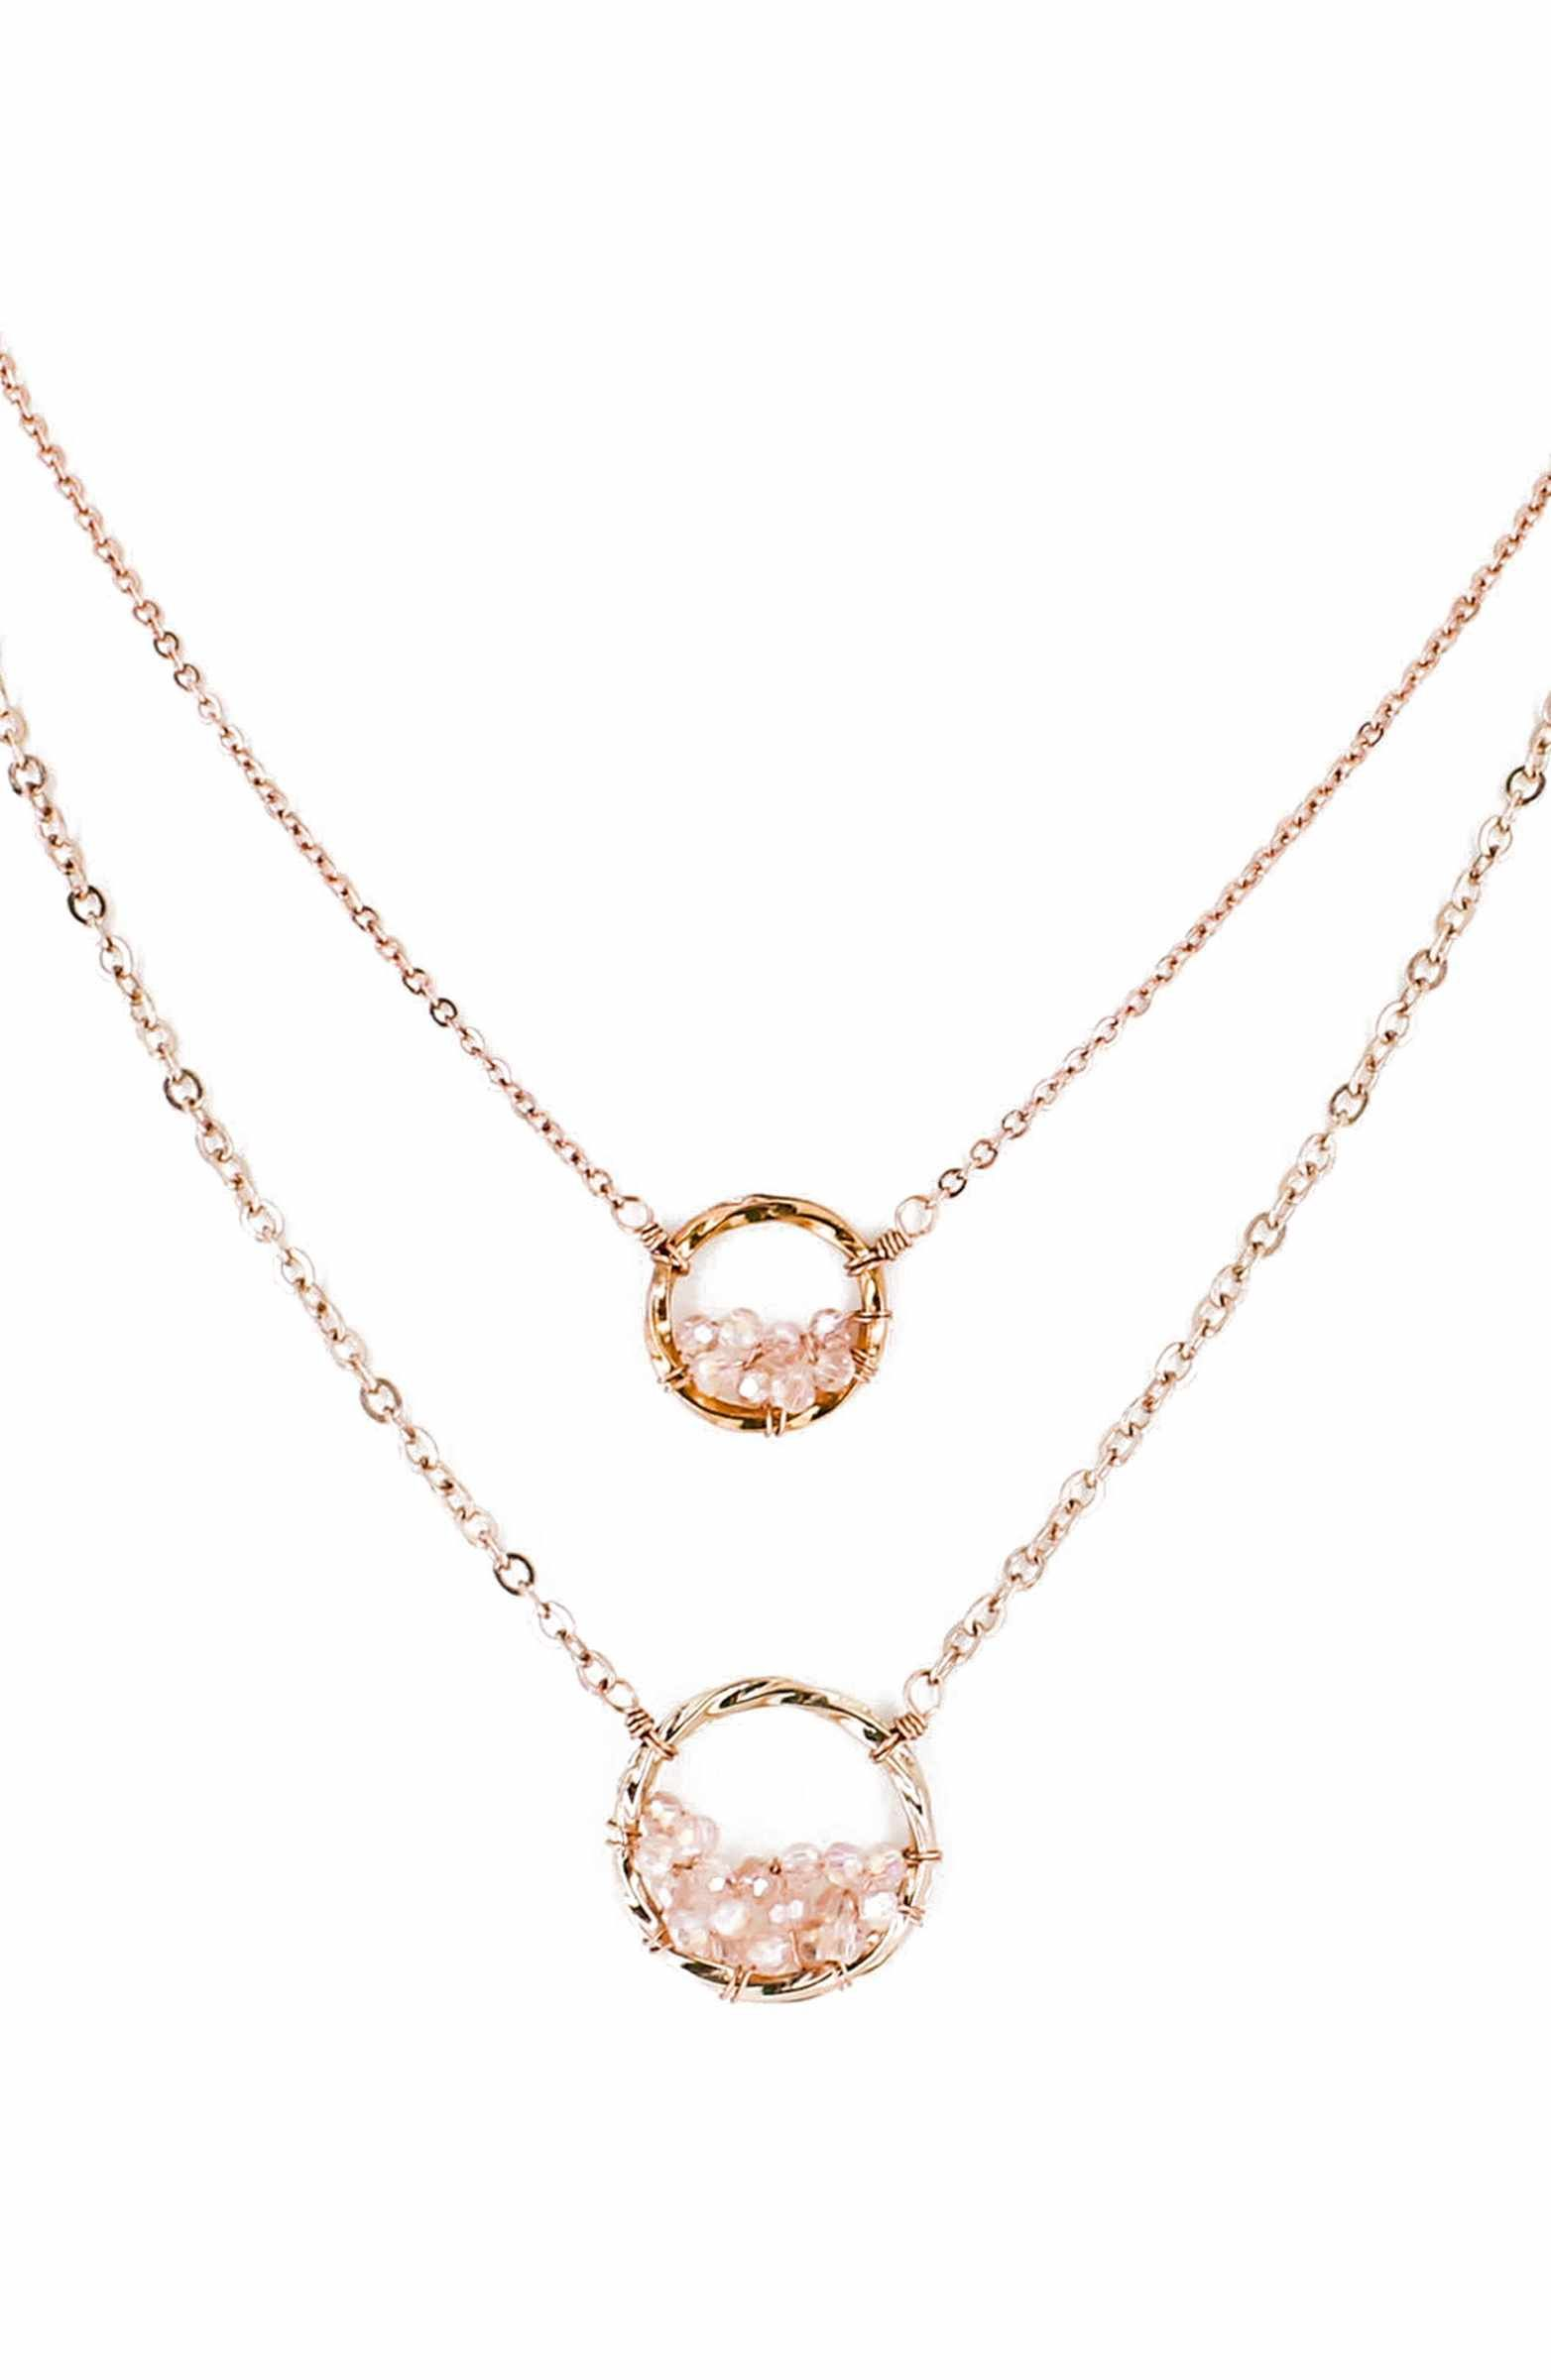 15671a4d977e7 Main Image - Panacea Crystal Circle Double Chain Necklace | My ...